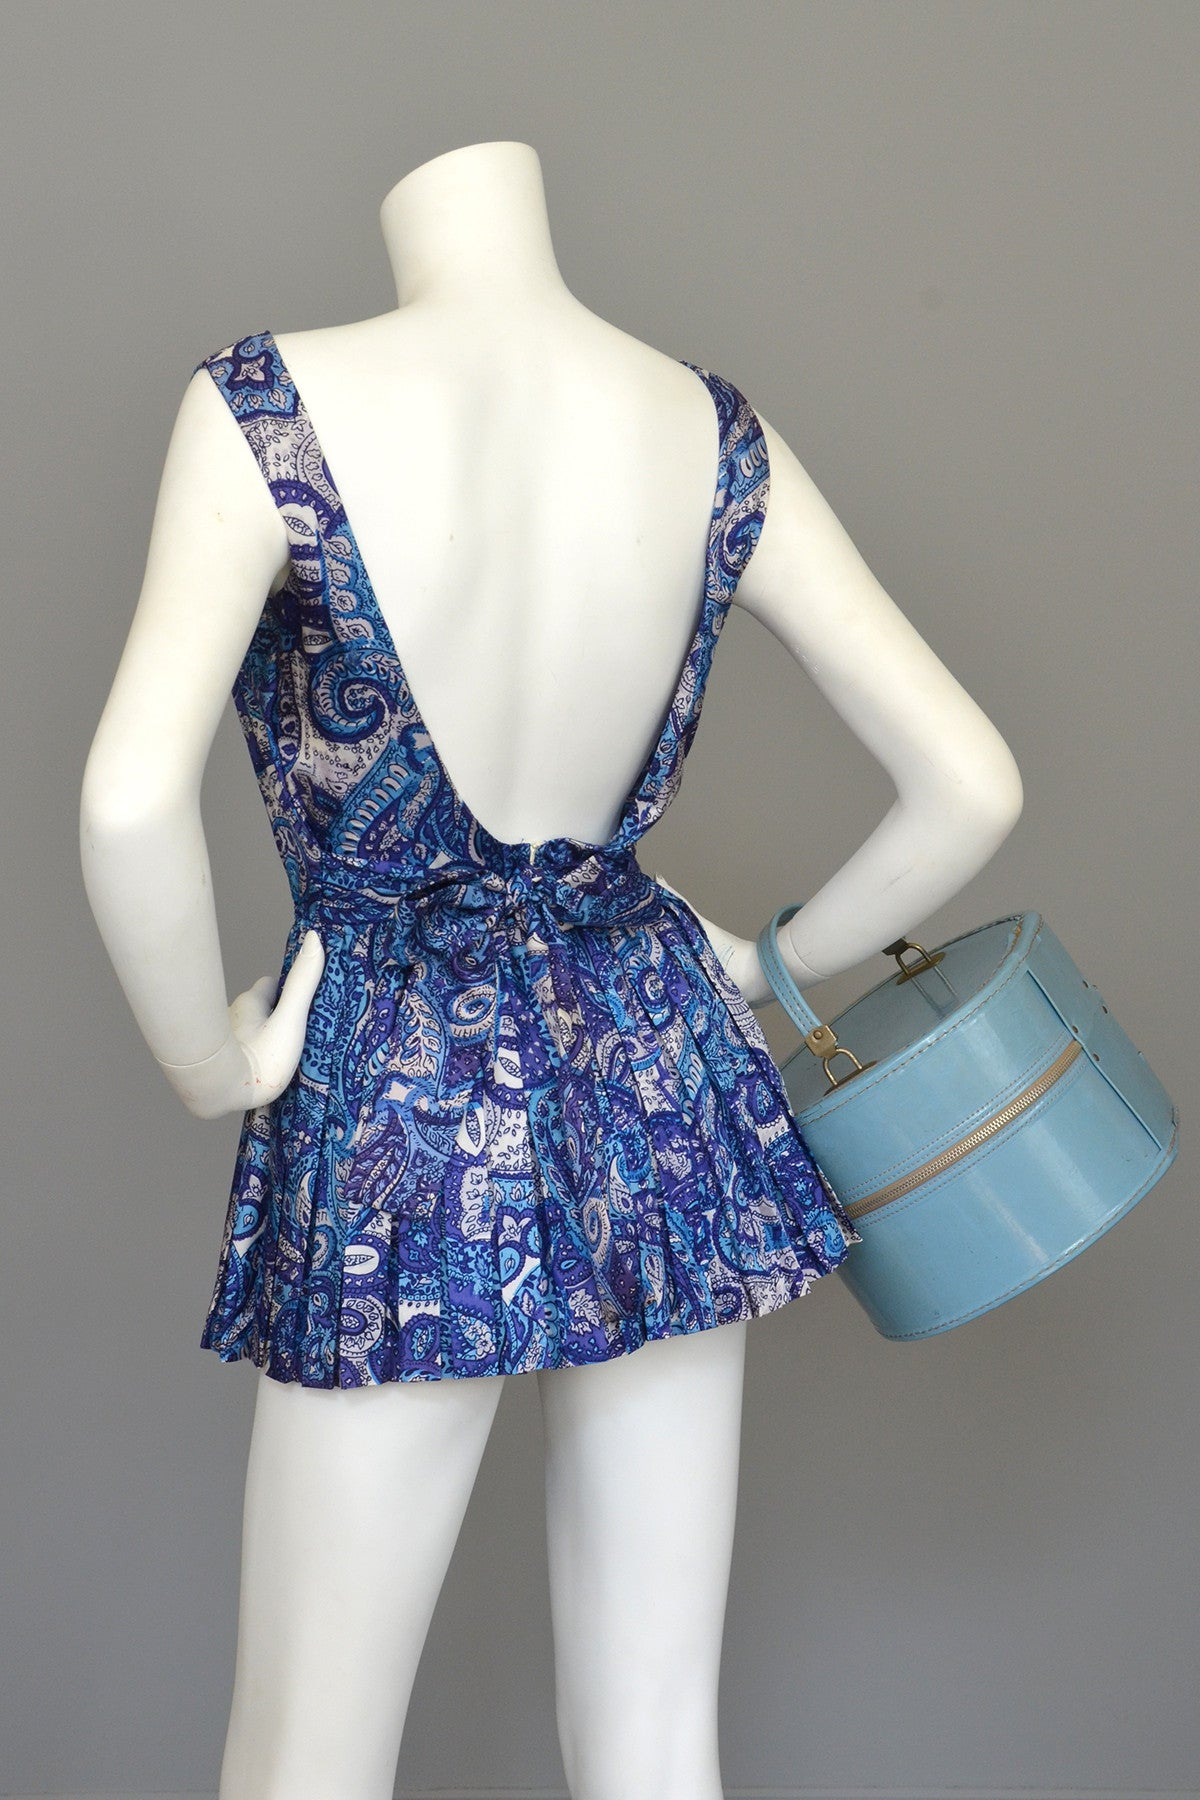 db64907c8bec8 1950s Blue Paisley Vintage Pinup Romper Bathing Suit Playsuit ...